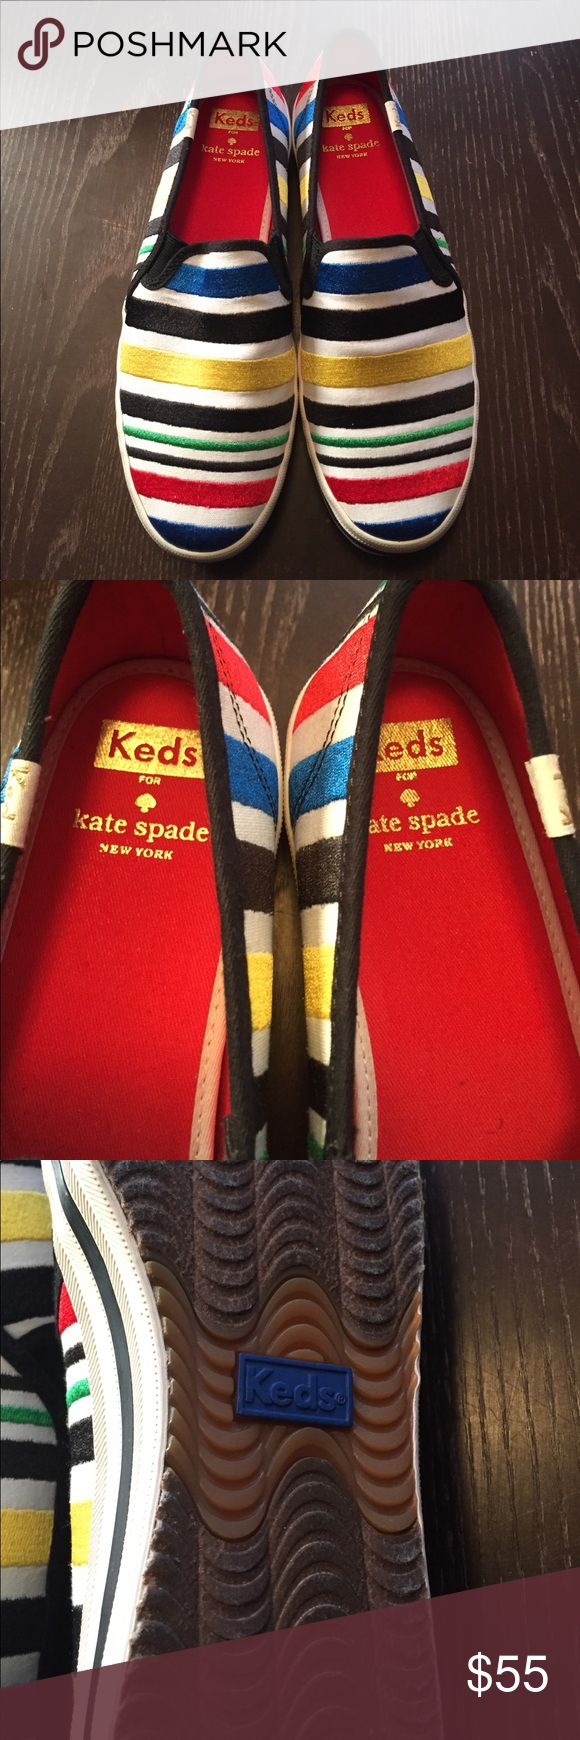 WOMENS KEDS FOR KATE SPADE SZ 7.5 SLIP ON SNEAKERS WOMENS FIR KATE SPADE STRIPE SLIP ON SNEAKERS. NEW NEVER WORN. SIZE 7.5.  BRIGHT COLORED STRIPES. KEDS FOR KATE SPADE Shoes Sneakers